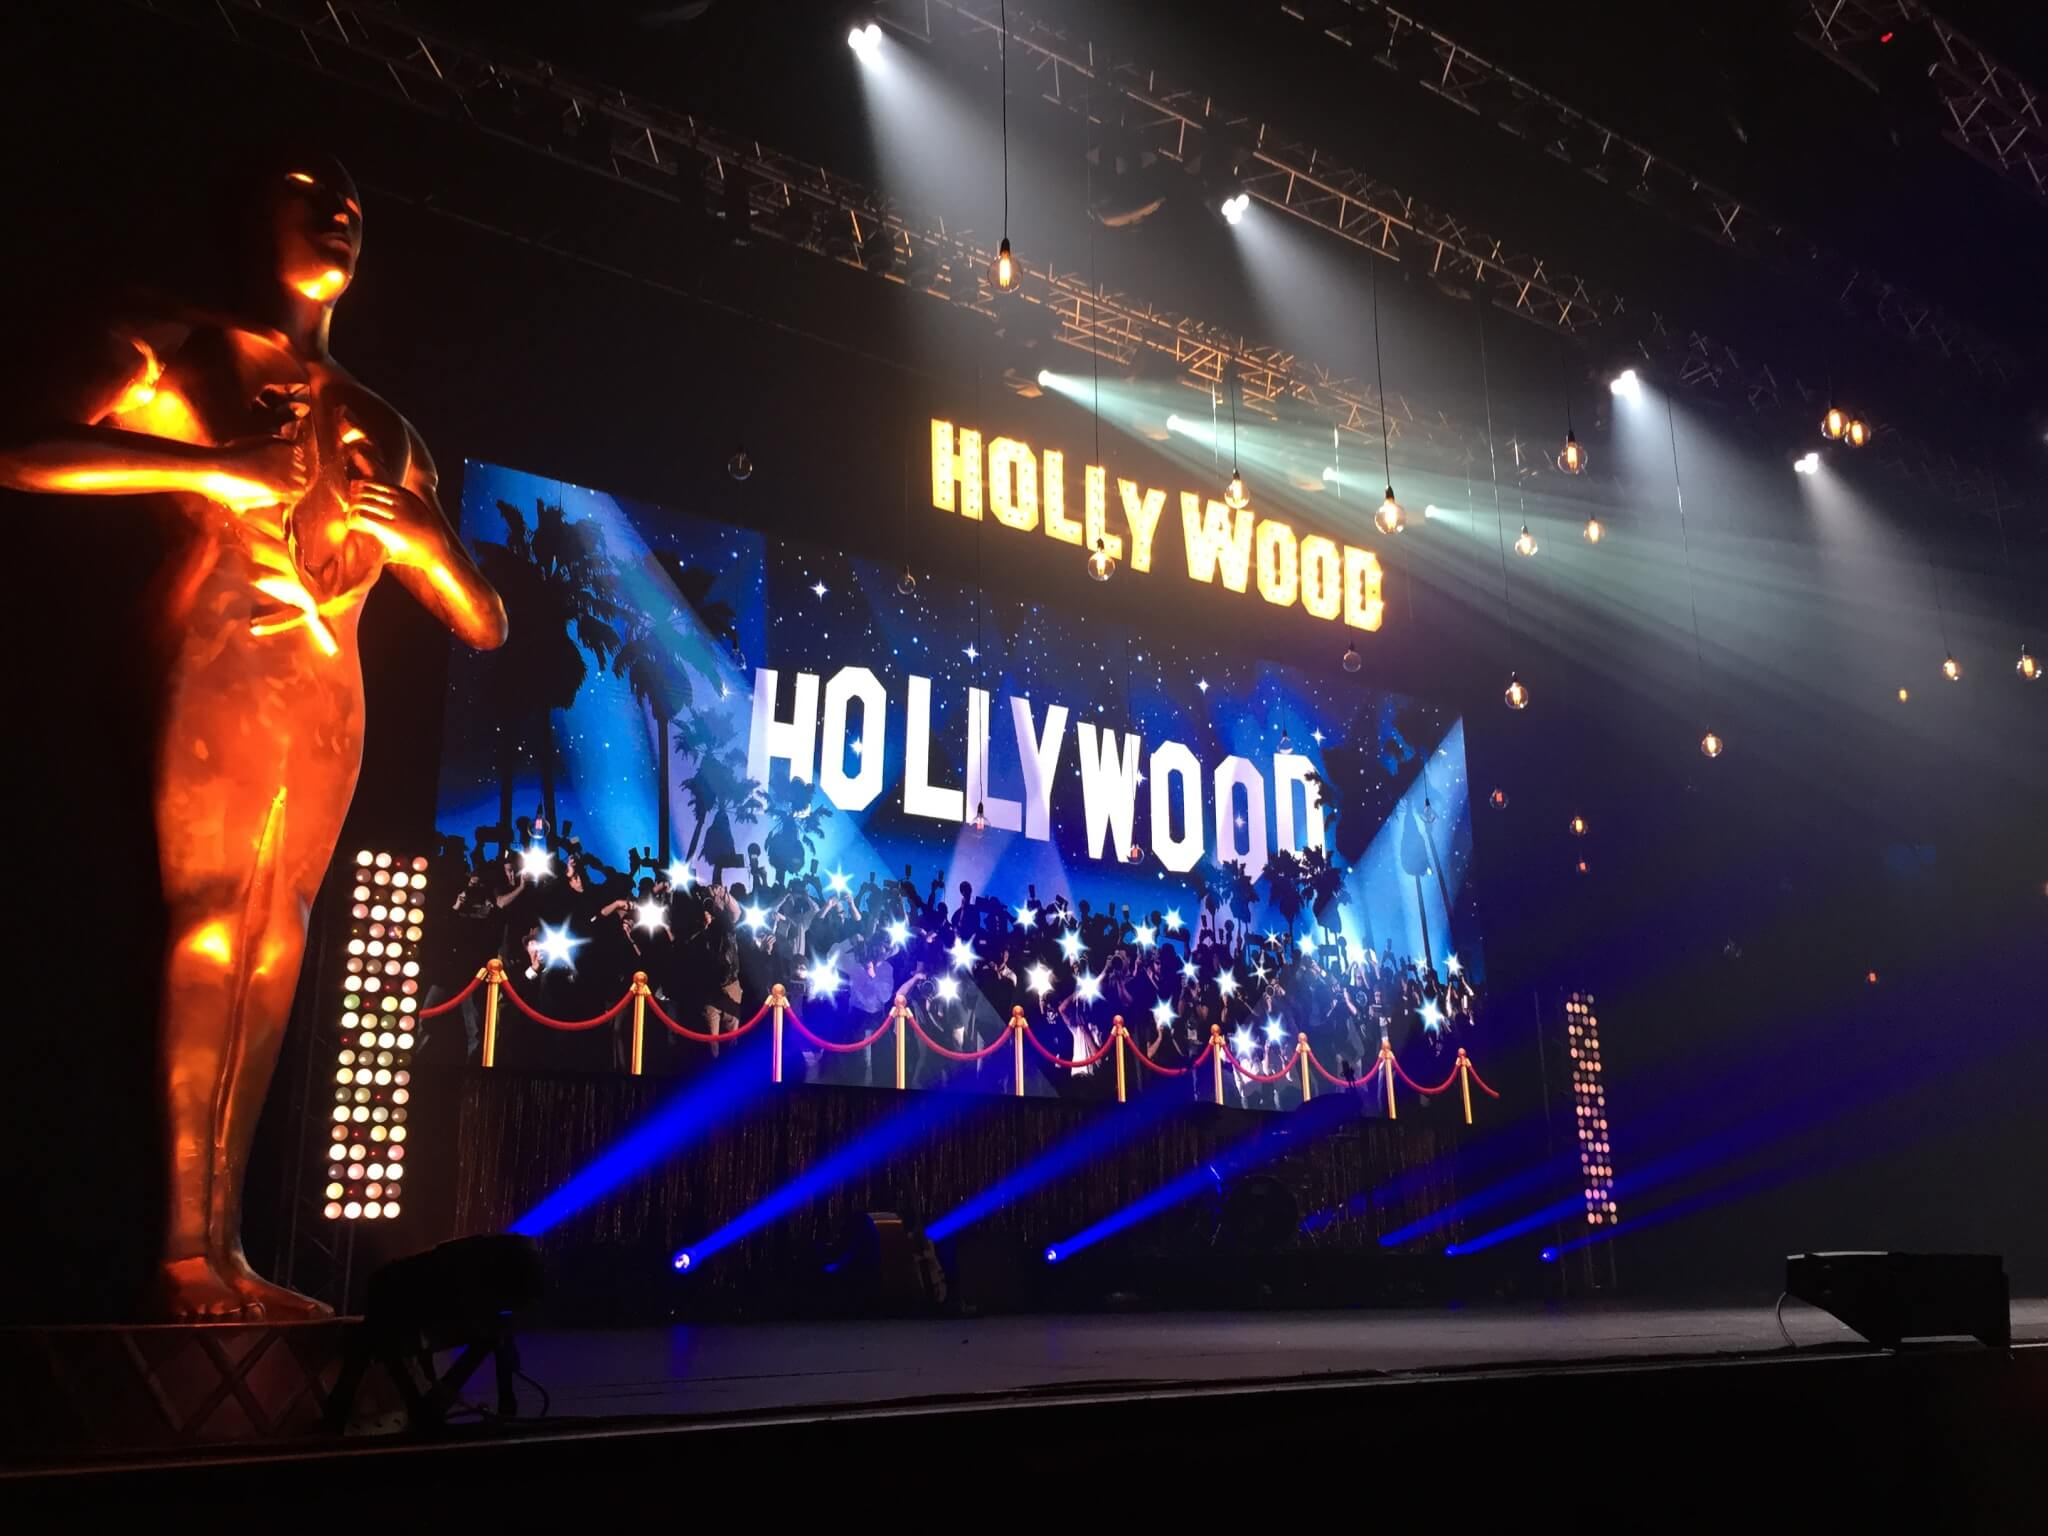 Hollywood Theme Awards Nights Corporate Events Theme